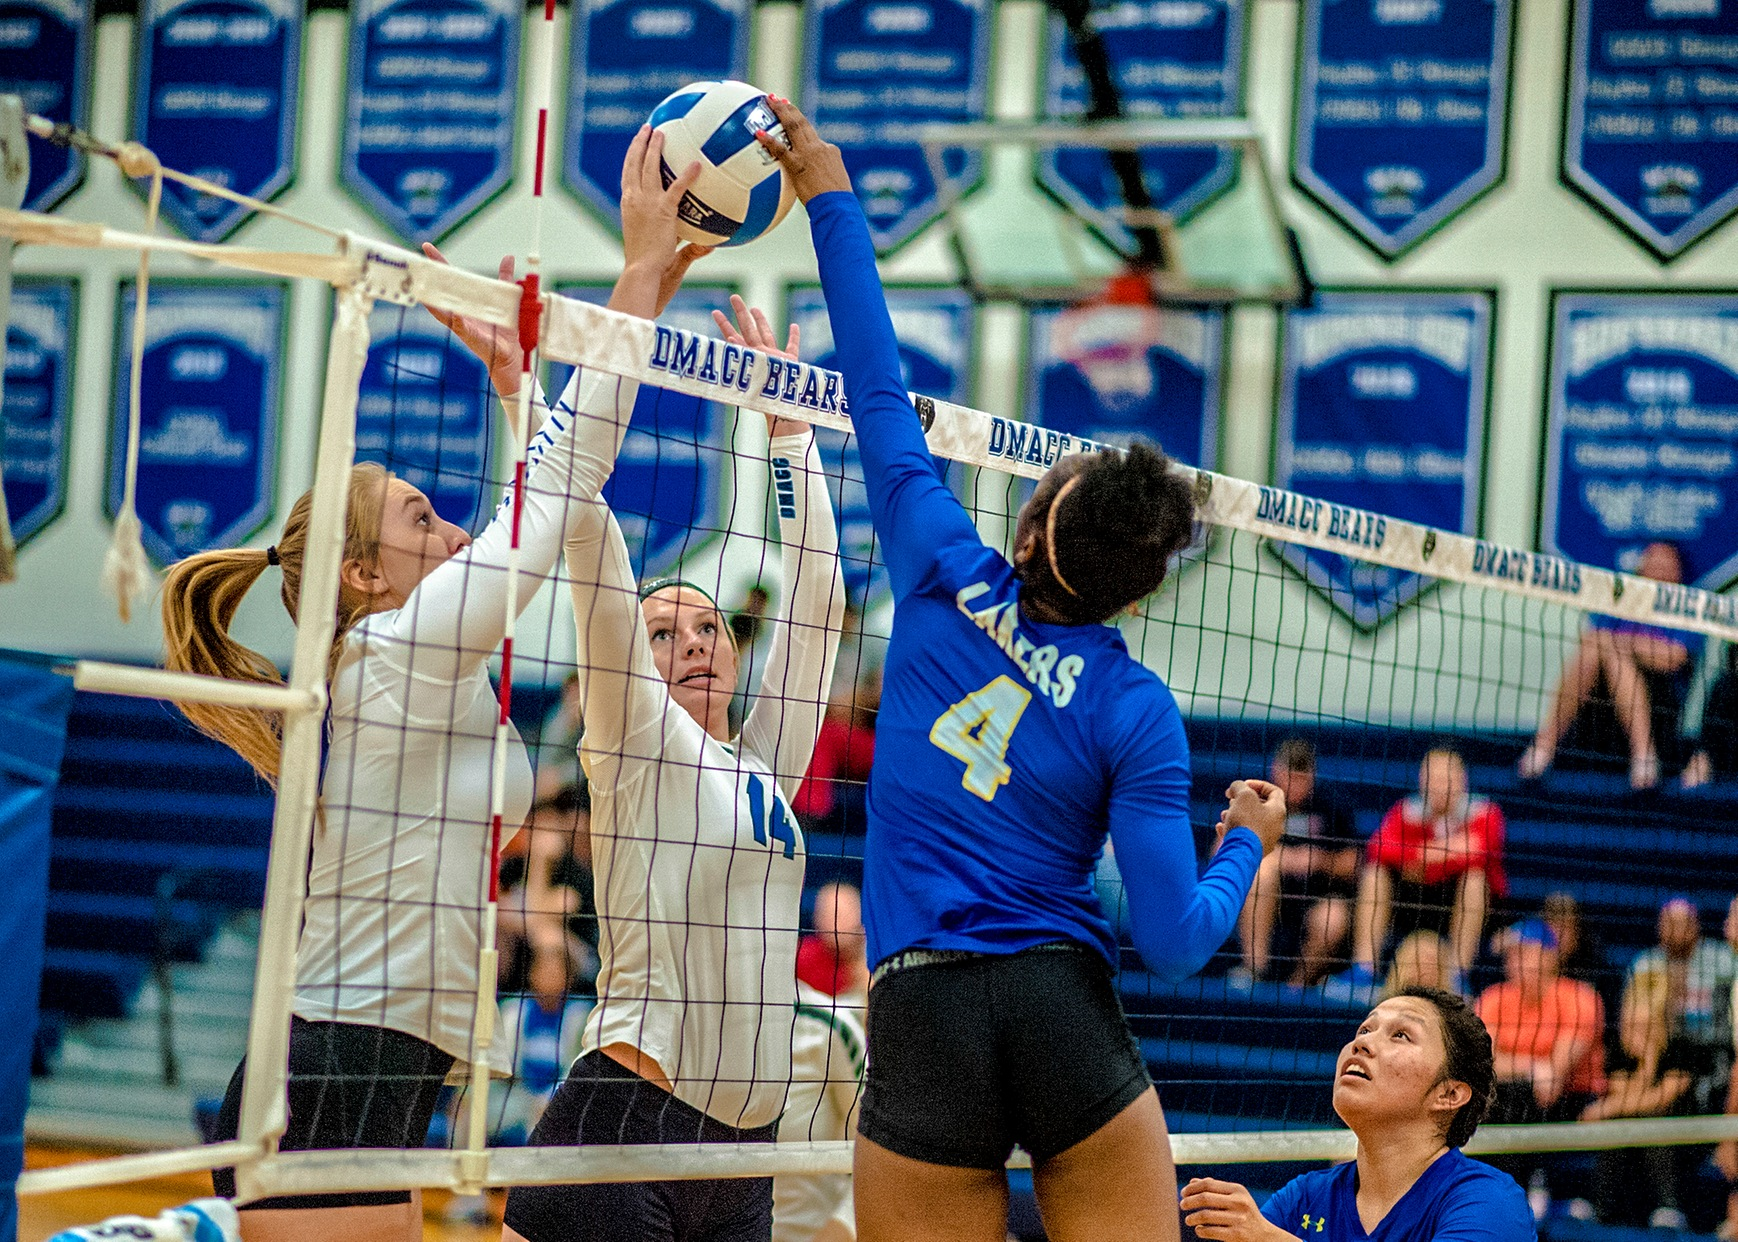 DMACC Volleyball Team Sweeps Iowa Lakers CC, 3-0